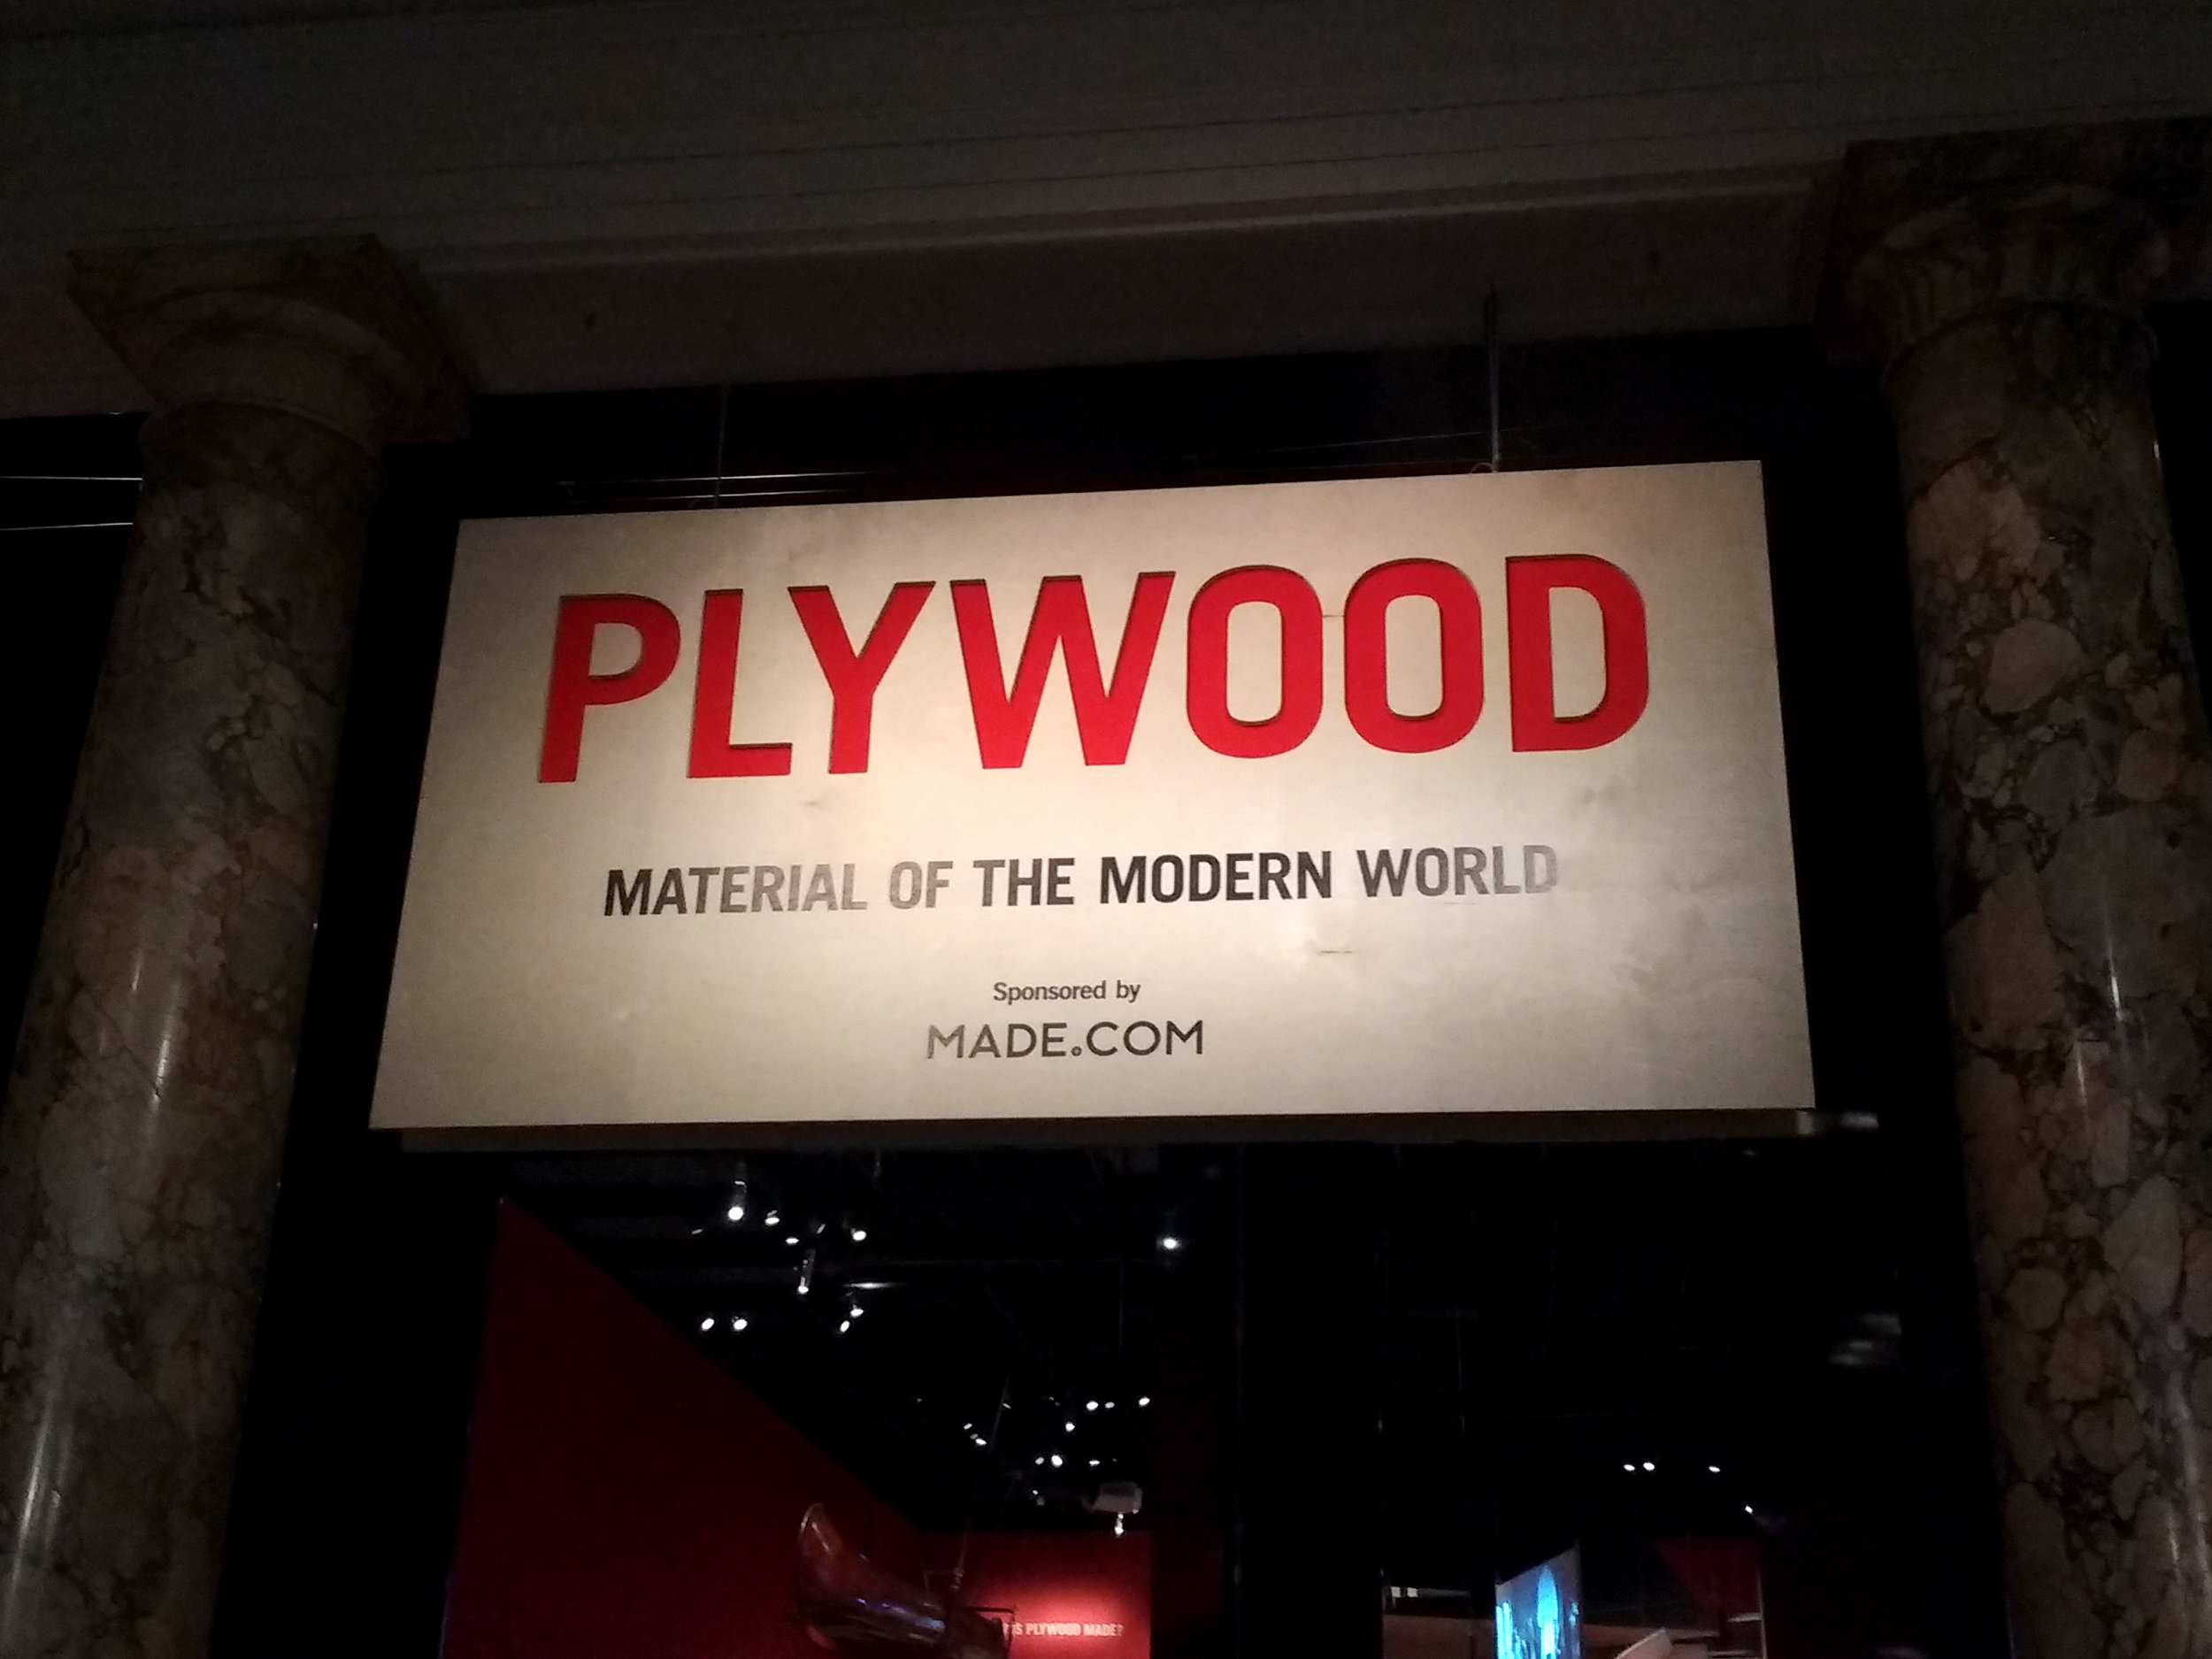 Plywood - Material of the Modern World sign, V&A museum.